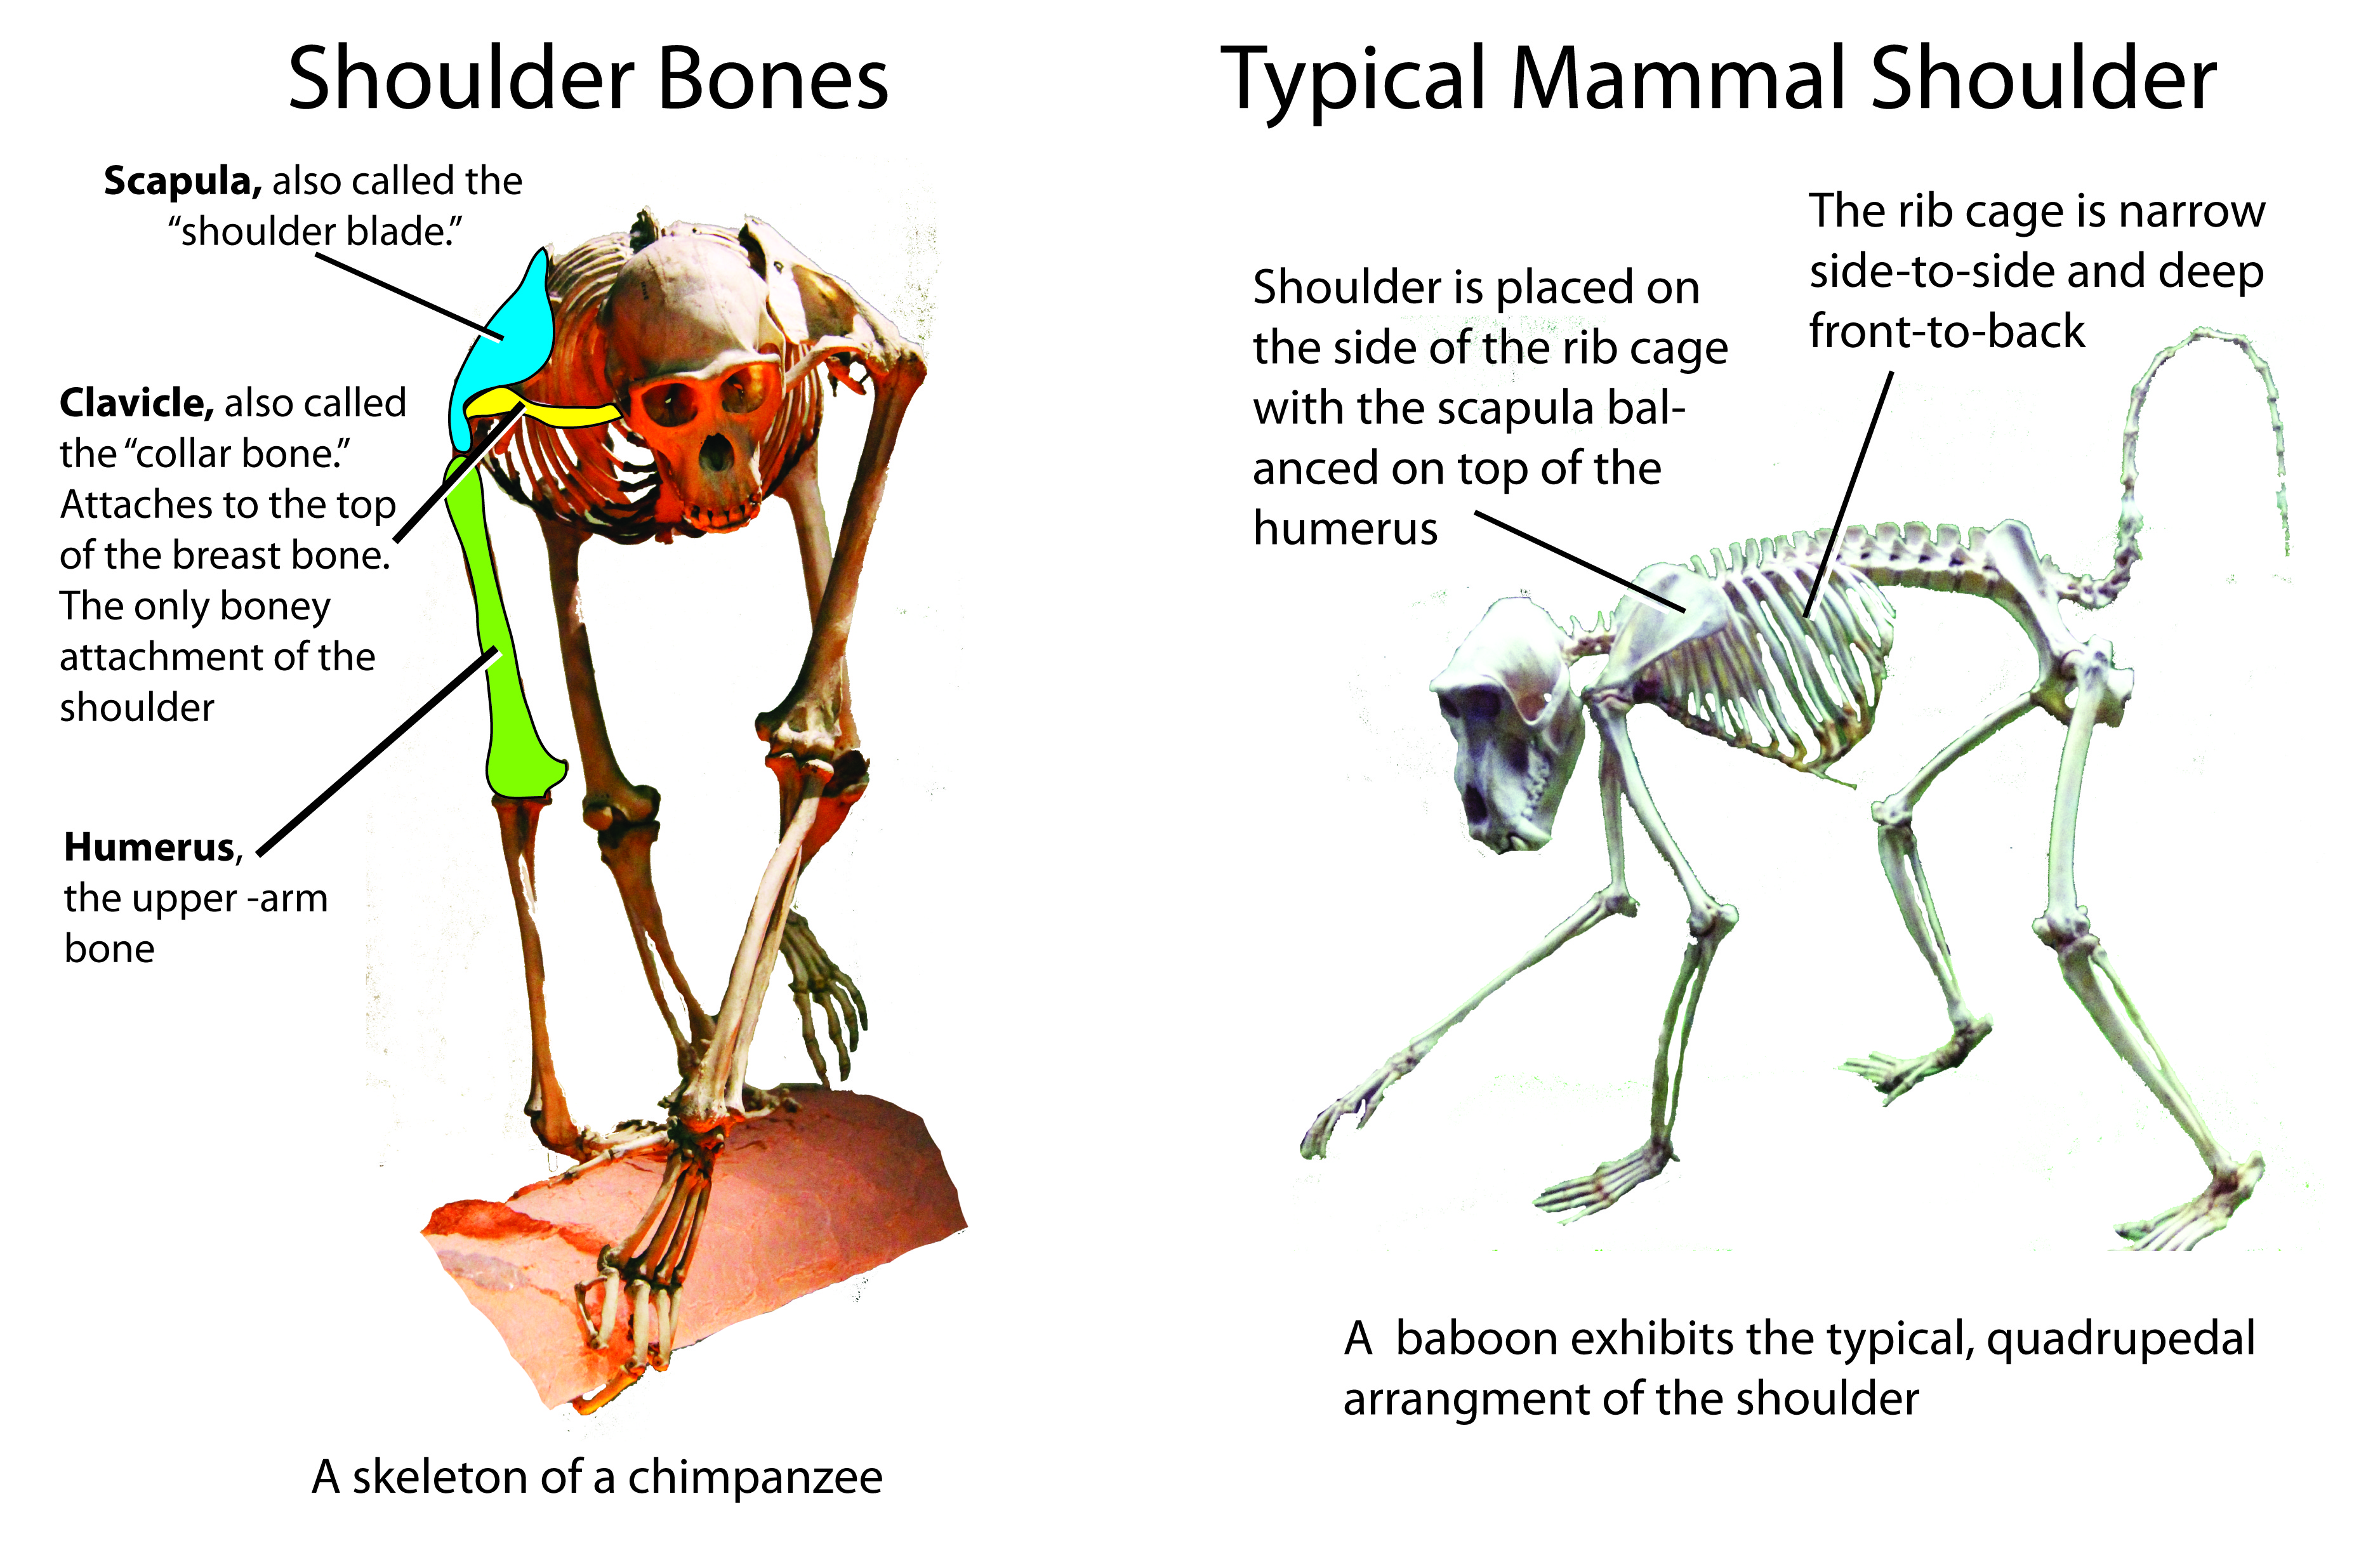 a report on the anatomy and locomotion of chimpanzees Bipedal humans came down from the trees, not up from the ground date: august 11, 2009 source: duke university summary: an analysis of wrist anatomy in humans, chimps, bonobos and gorillas .